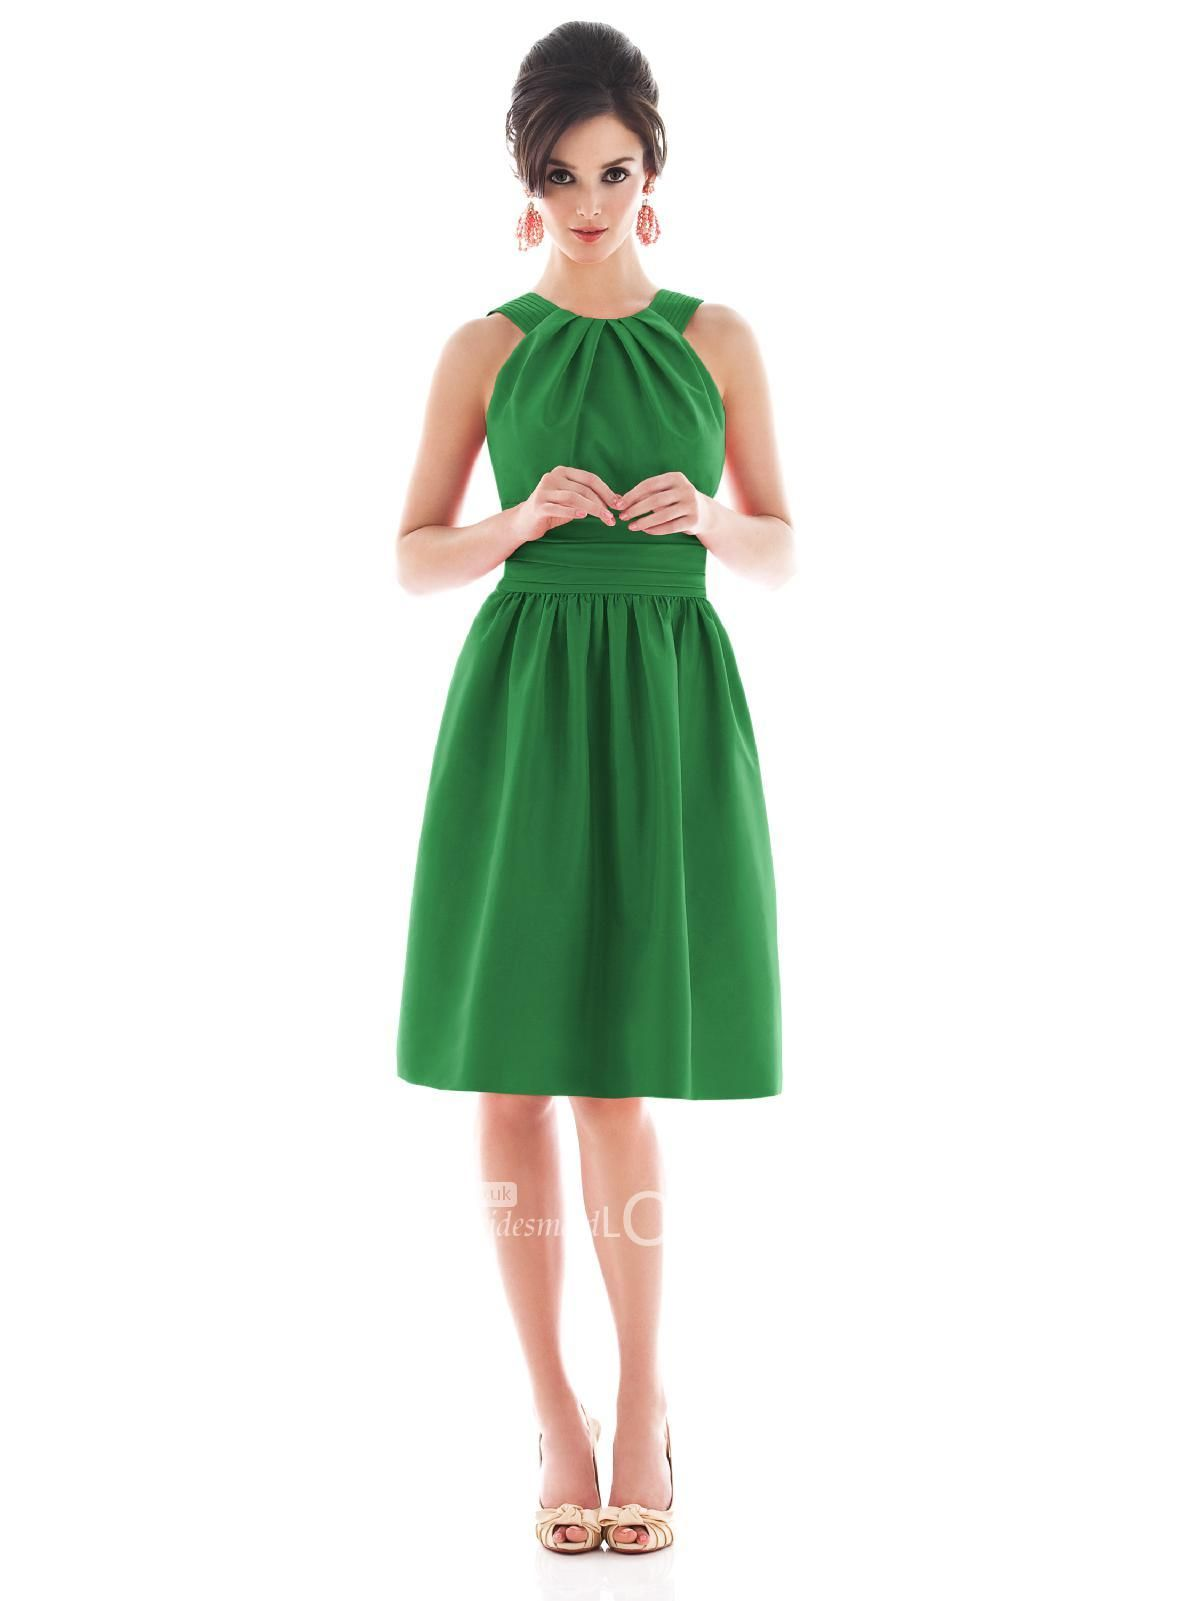 Cute mini ivy halter bridesmaid dress with stitched straps bodice alfred sung style retro vintage bridesmaid dress in pine green from weddington way ombrellifo Choice Image